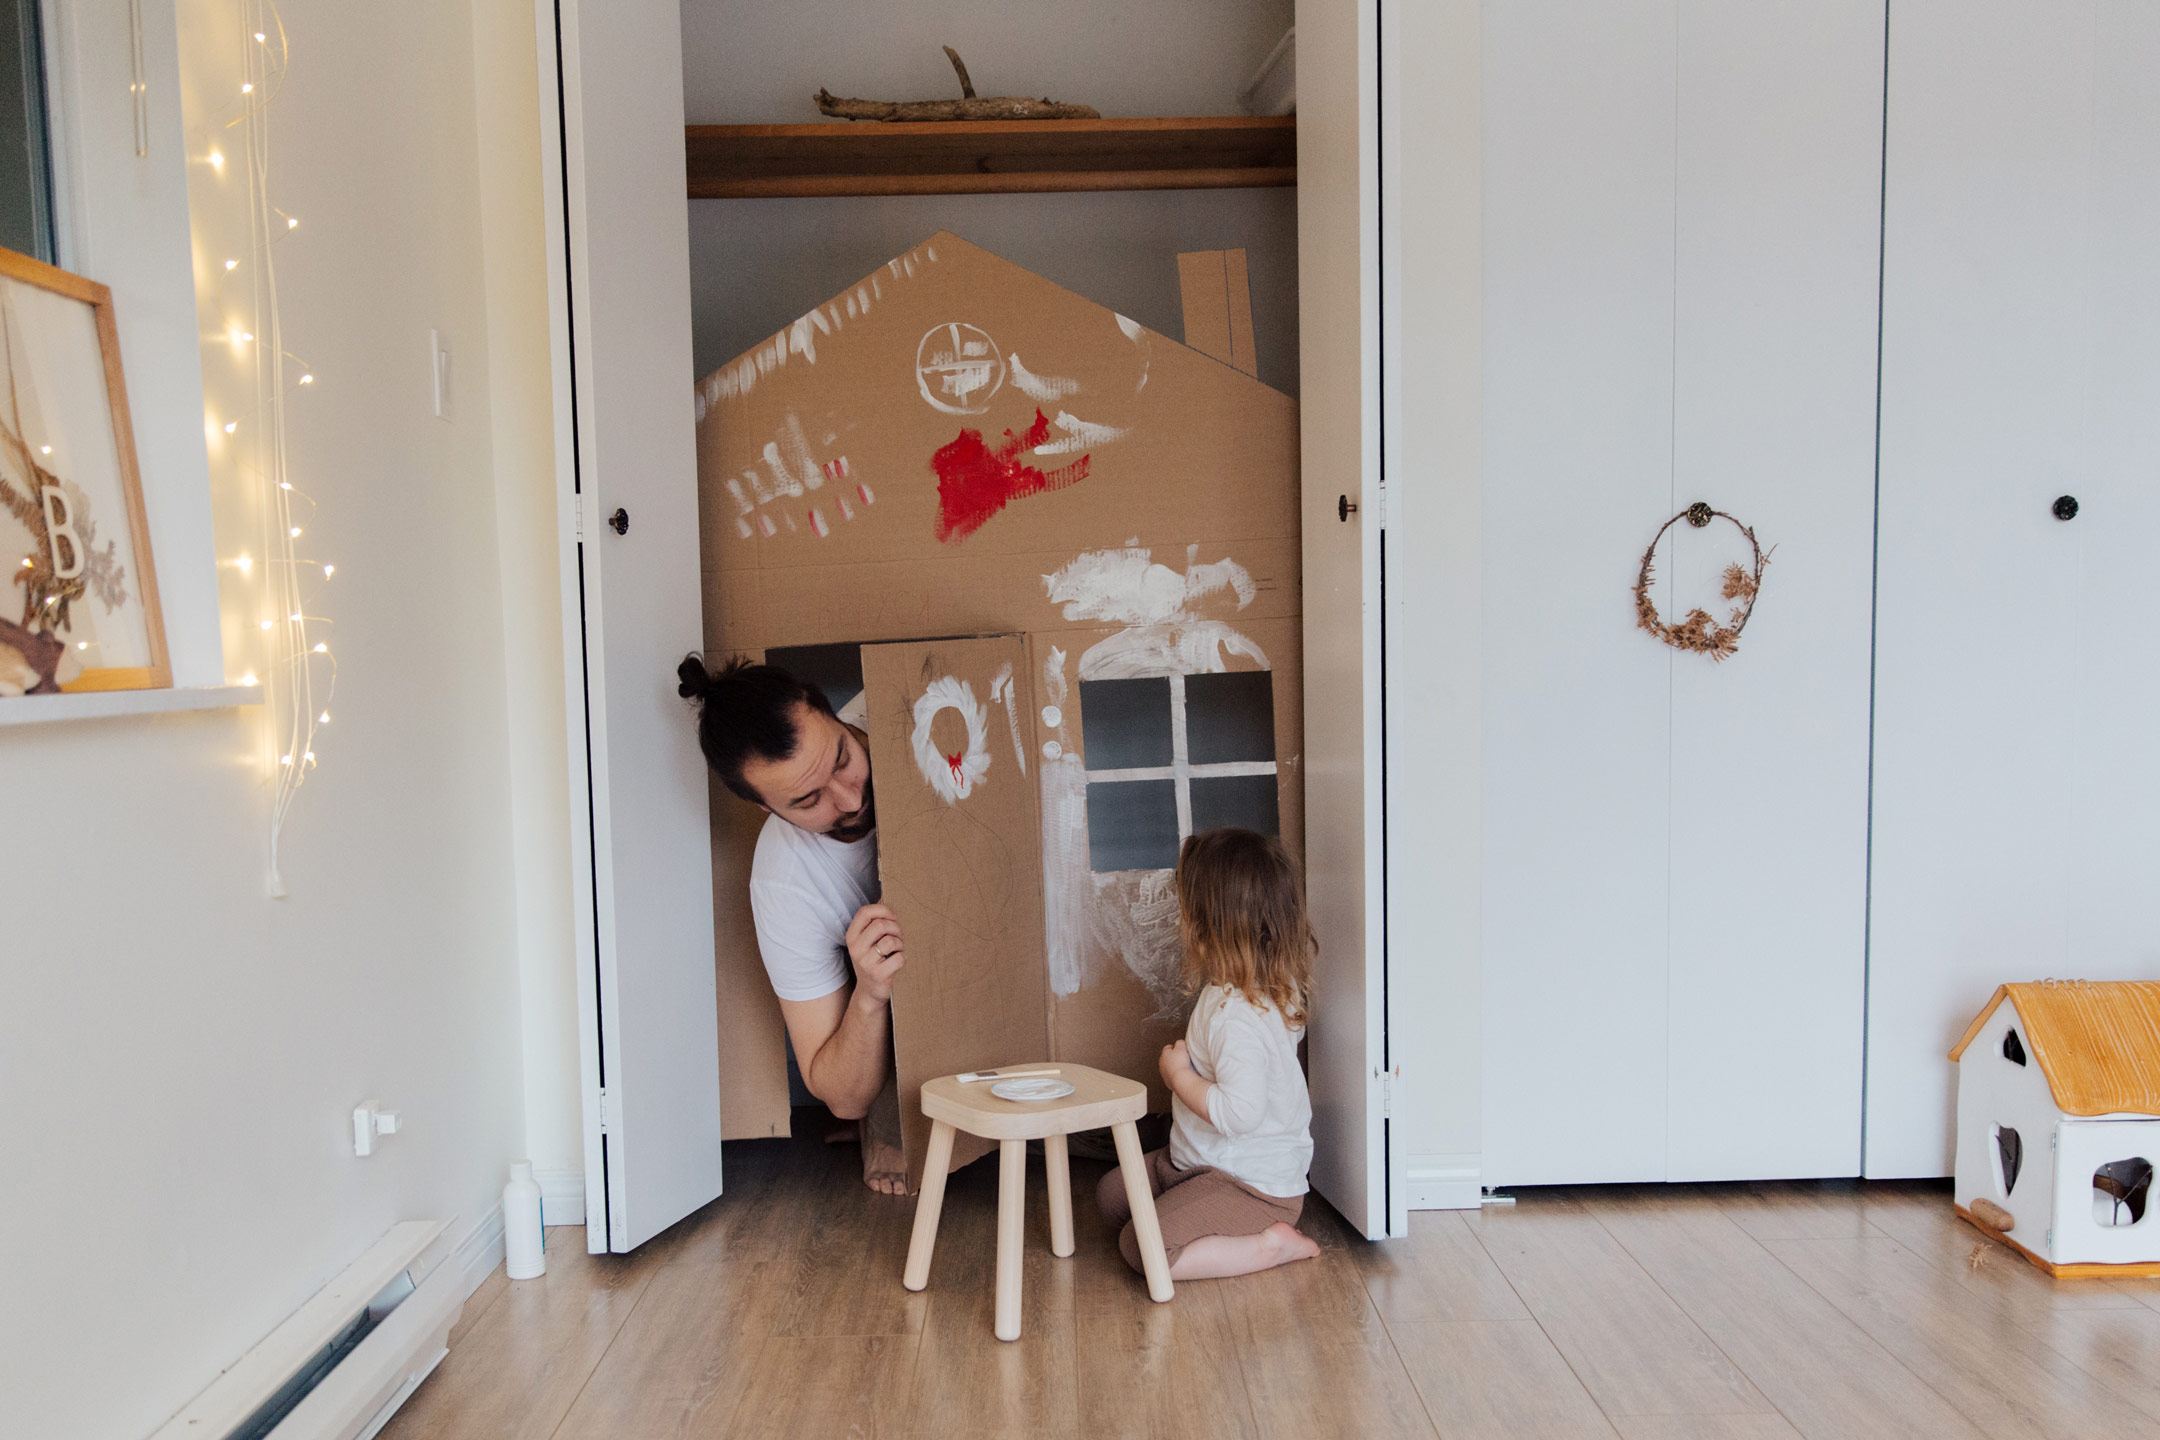 dad-and-daughter-cubby-playing